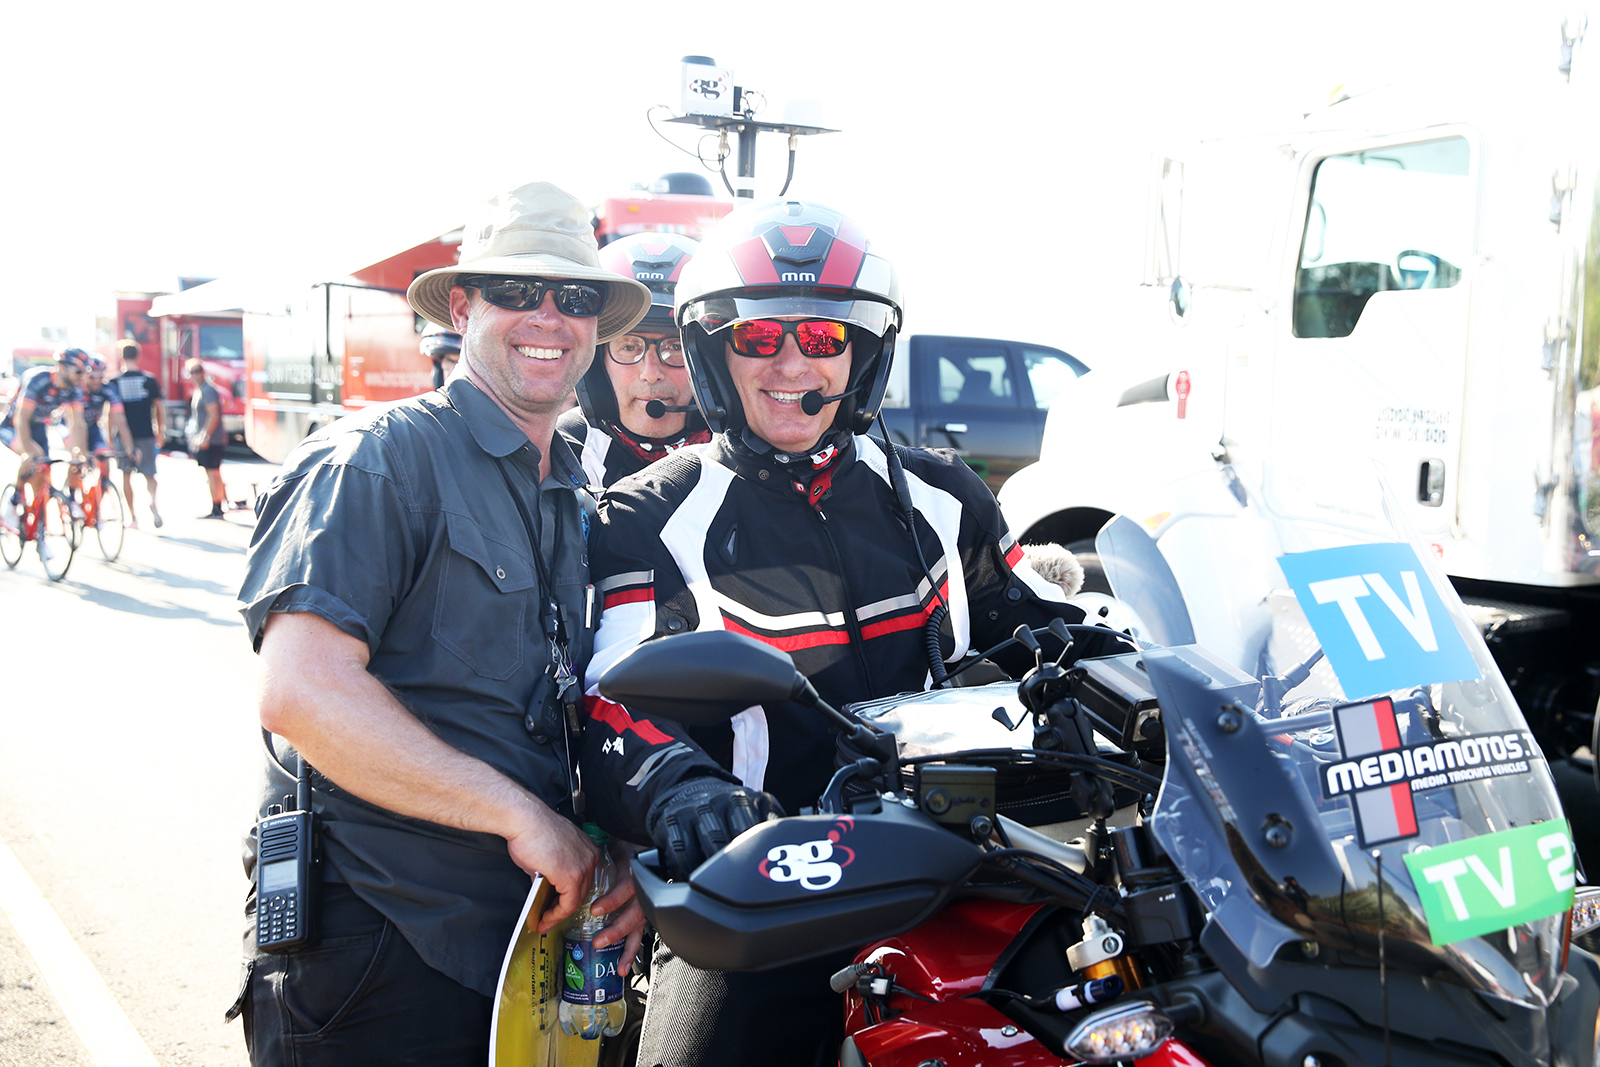 TV crew and Regulator, Tim Schaars poses for a quick photo.  2018 Tour of Utah Team Prologue, August 6, 2018, St. George, Utah. Photo by Cathy Fegan-Kim, cottonsoxphotography.net